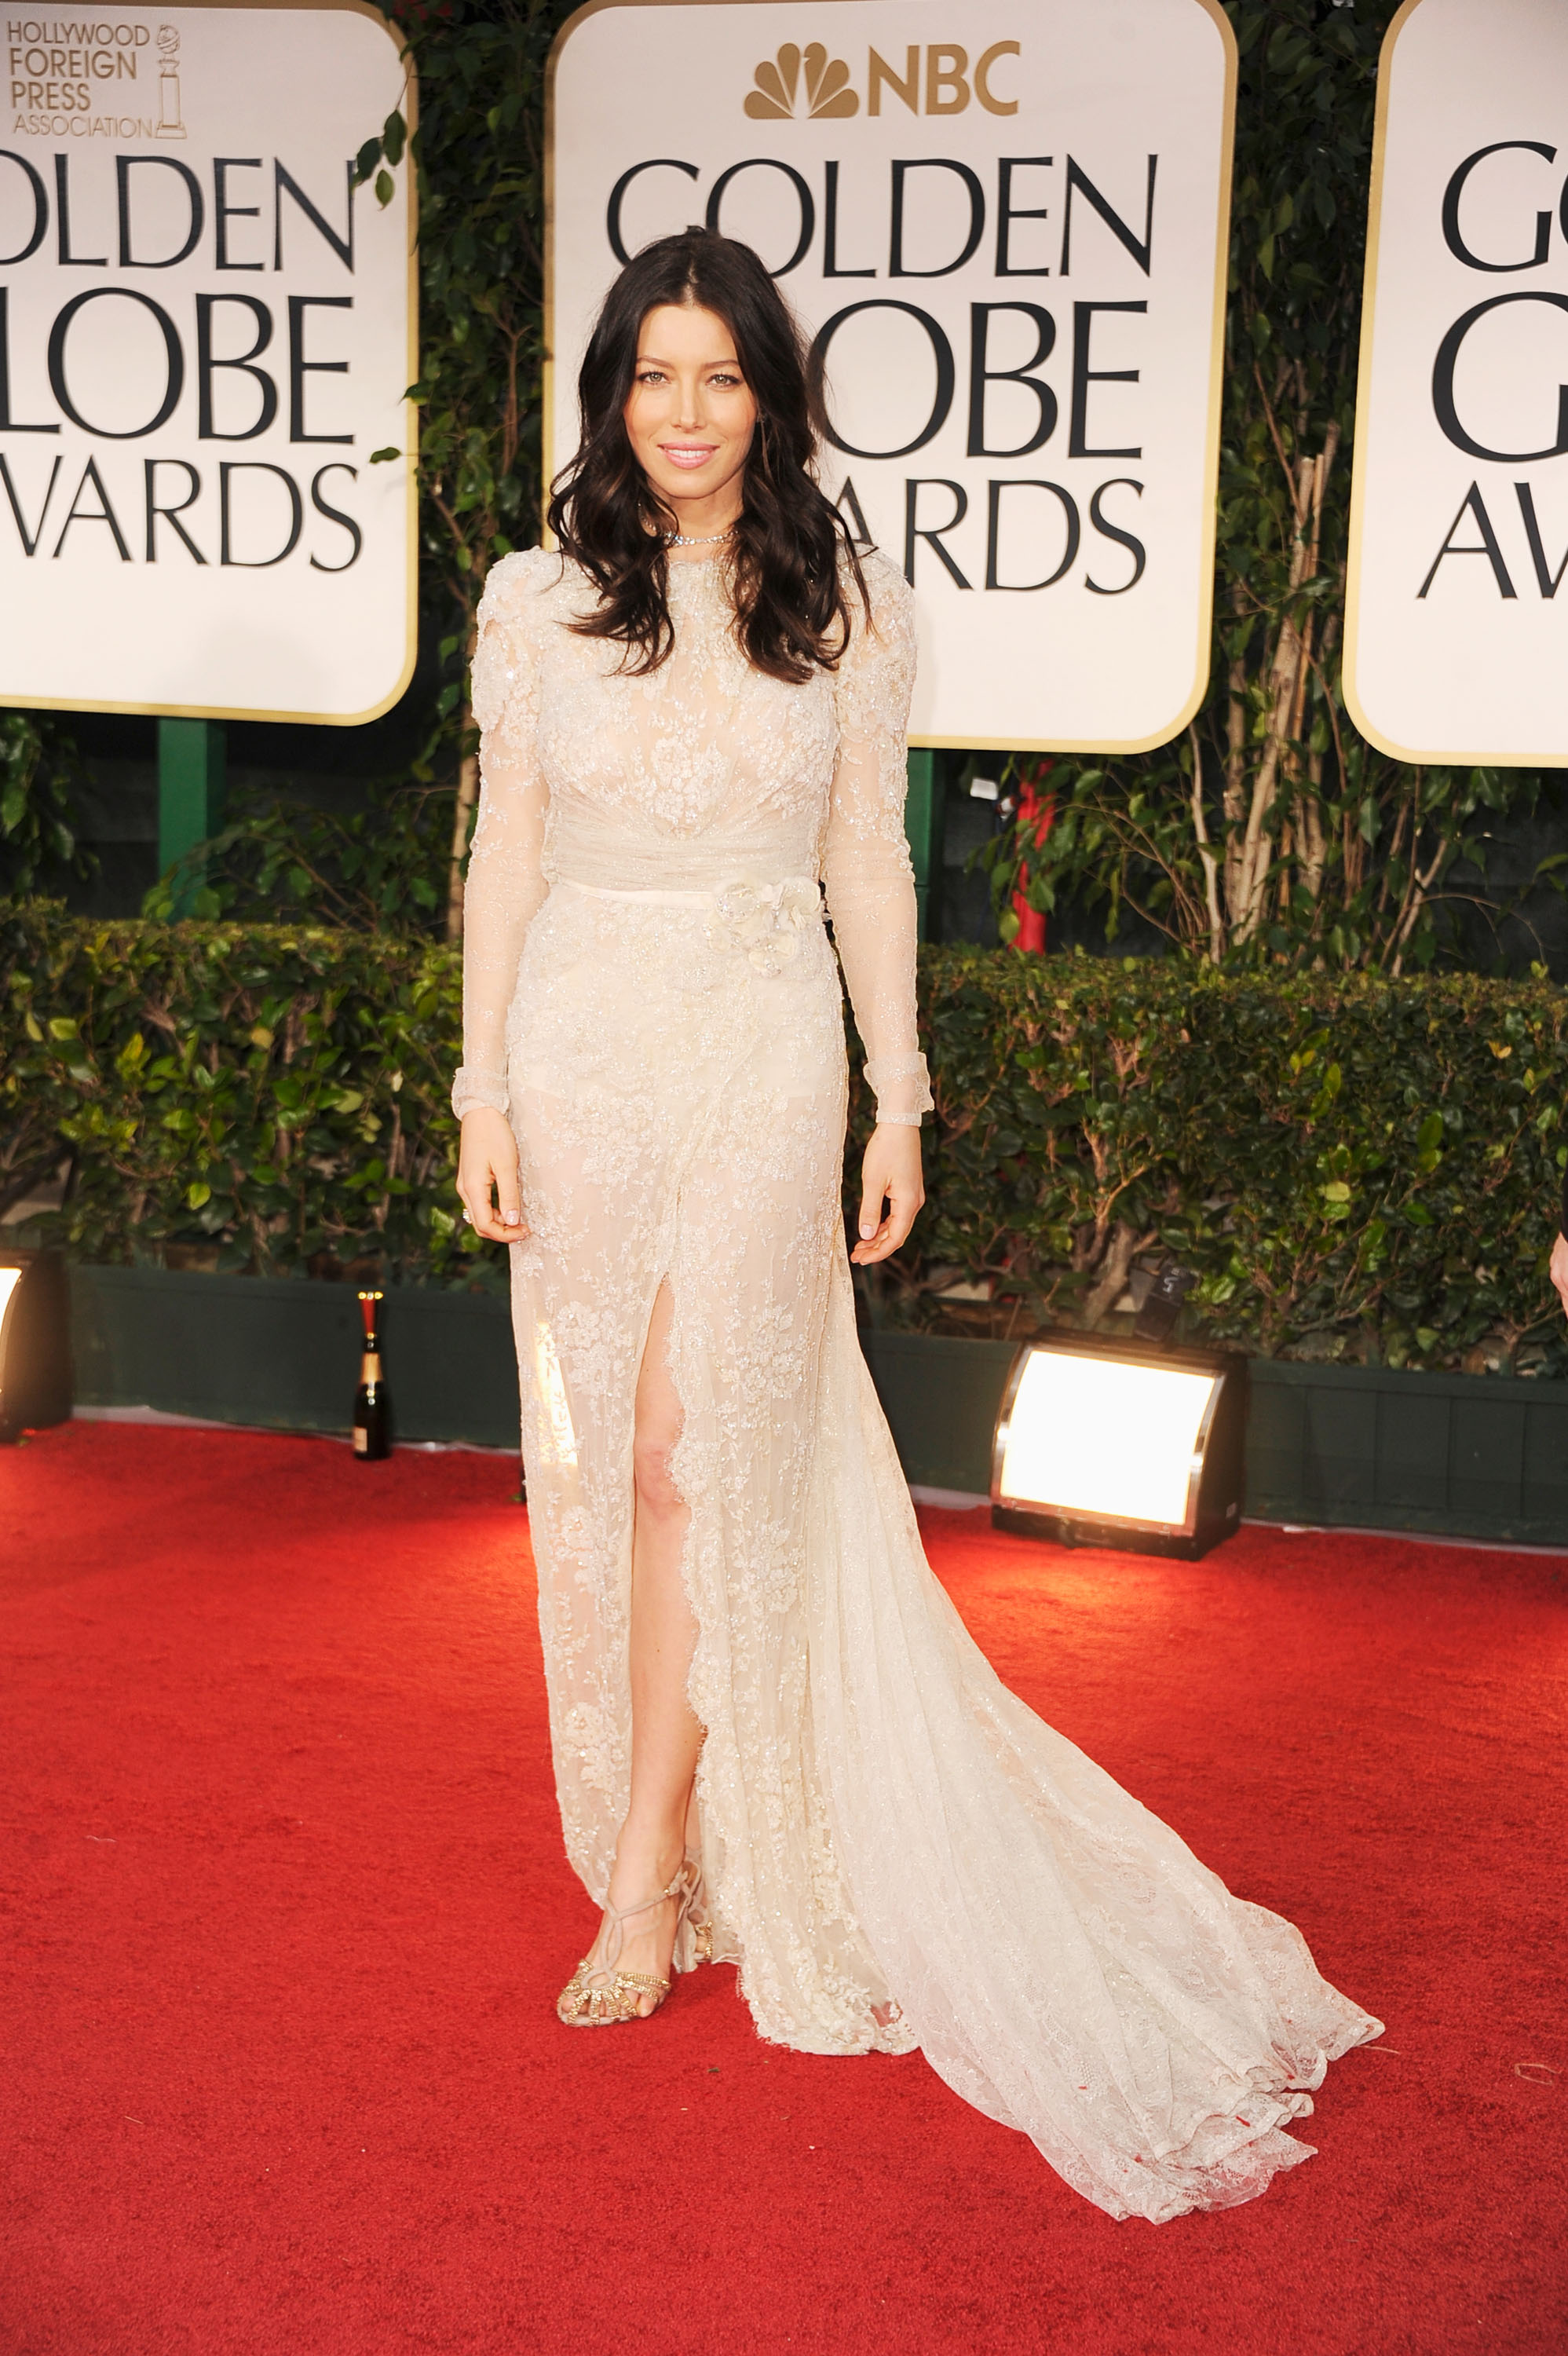 Jessica Biel in Elie Saab at the Golden Globes.